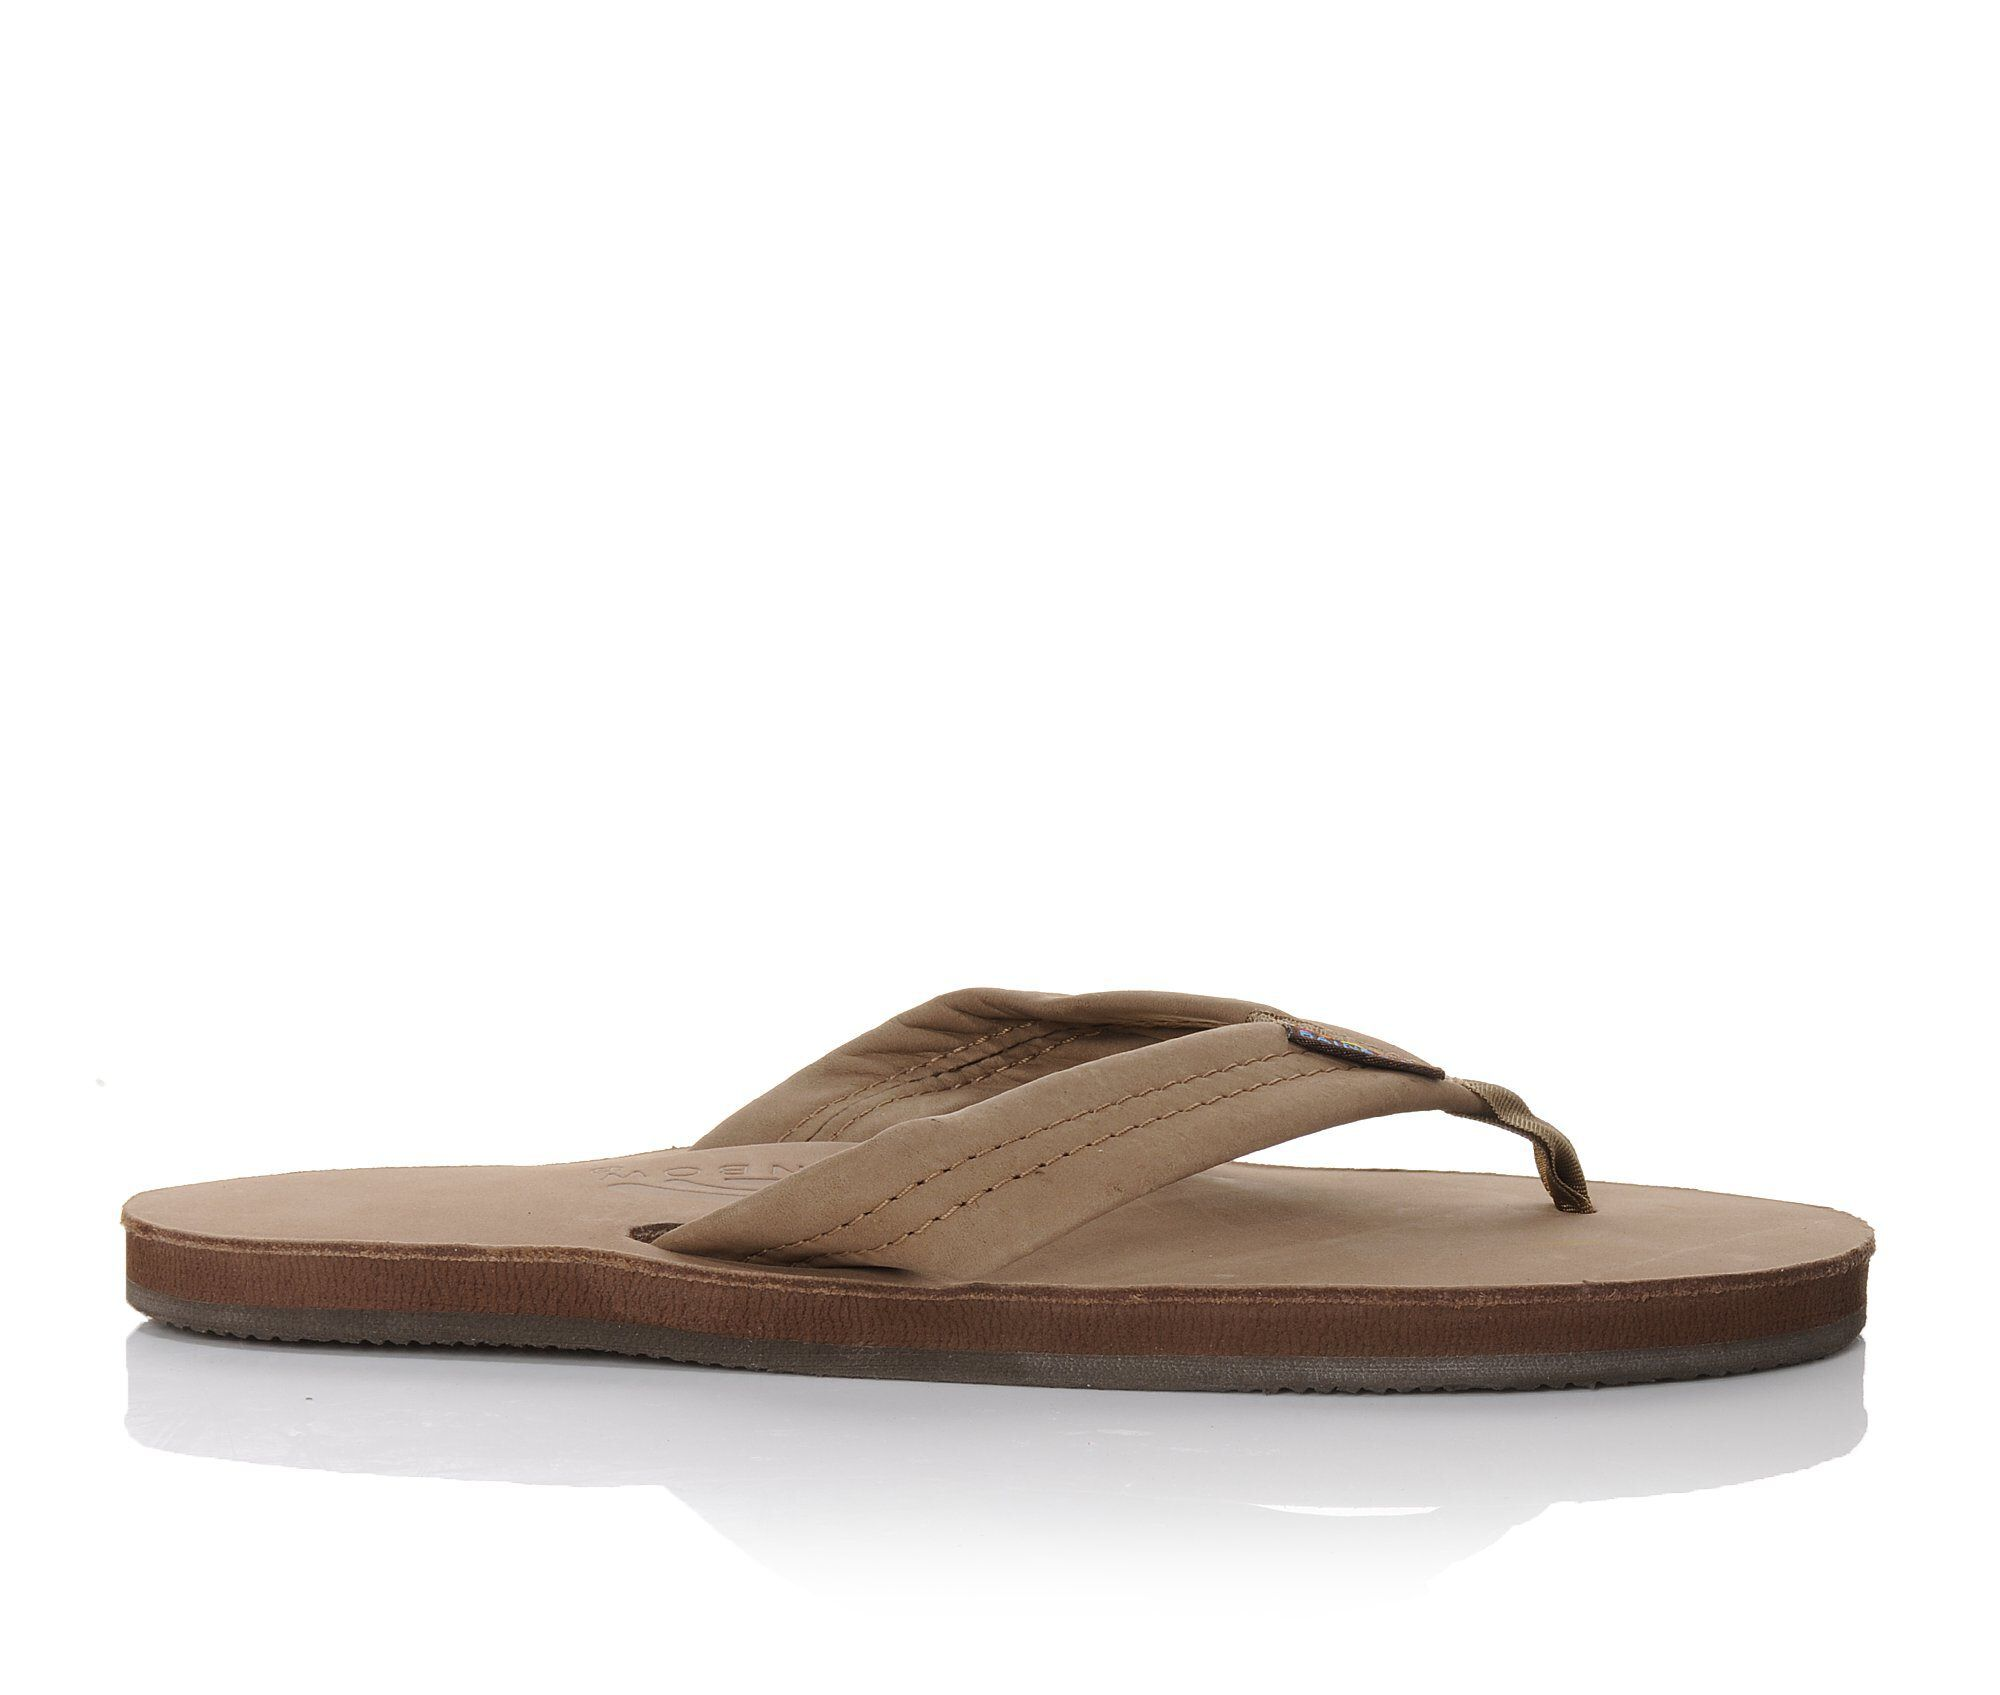 Women's Rainbow Sandals Single Layer Premier Leather -301ALTS Flip-Flops Dark Brown